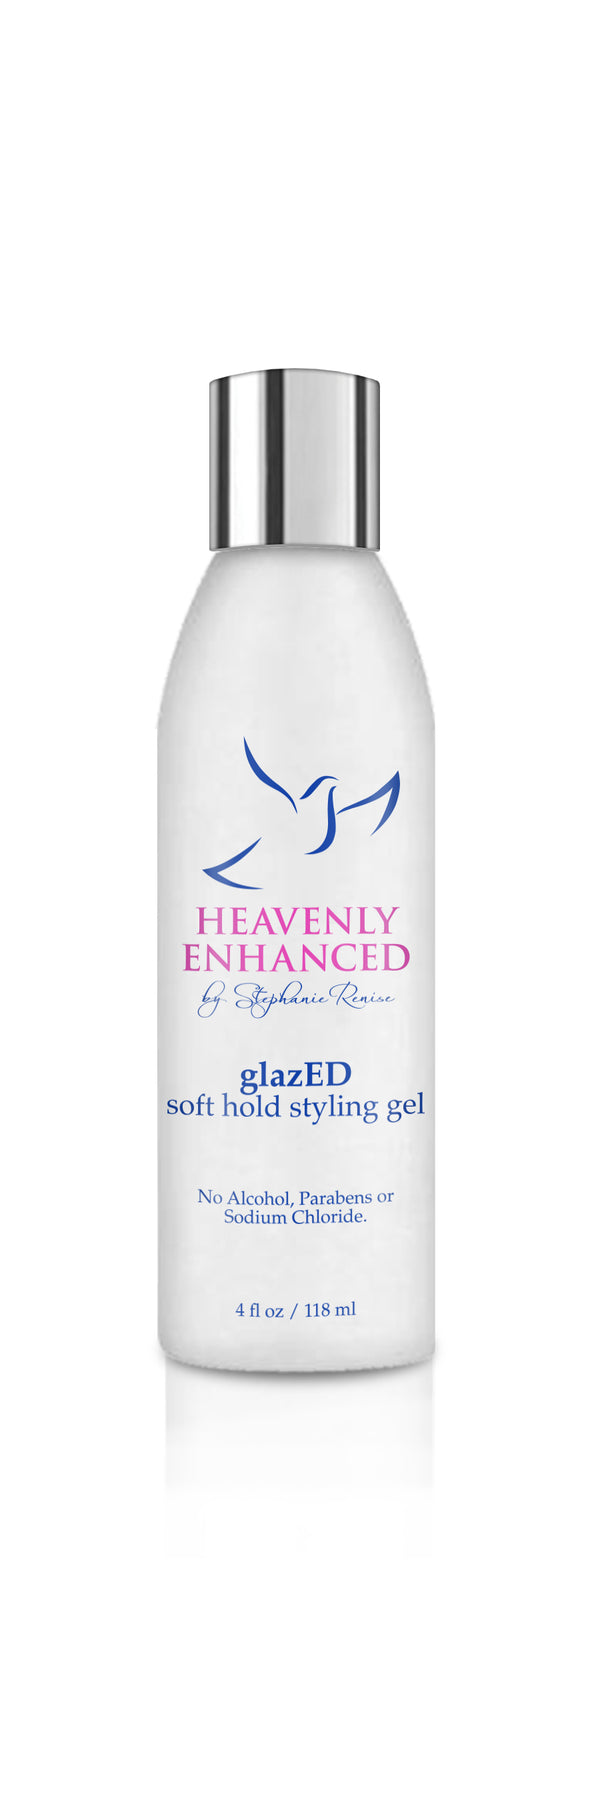 glazED - soft hold styling gel